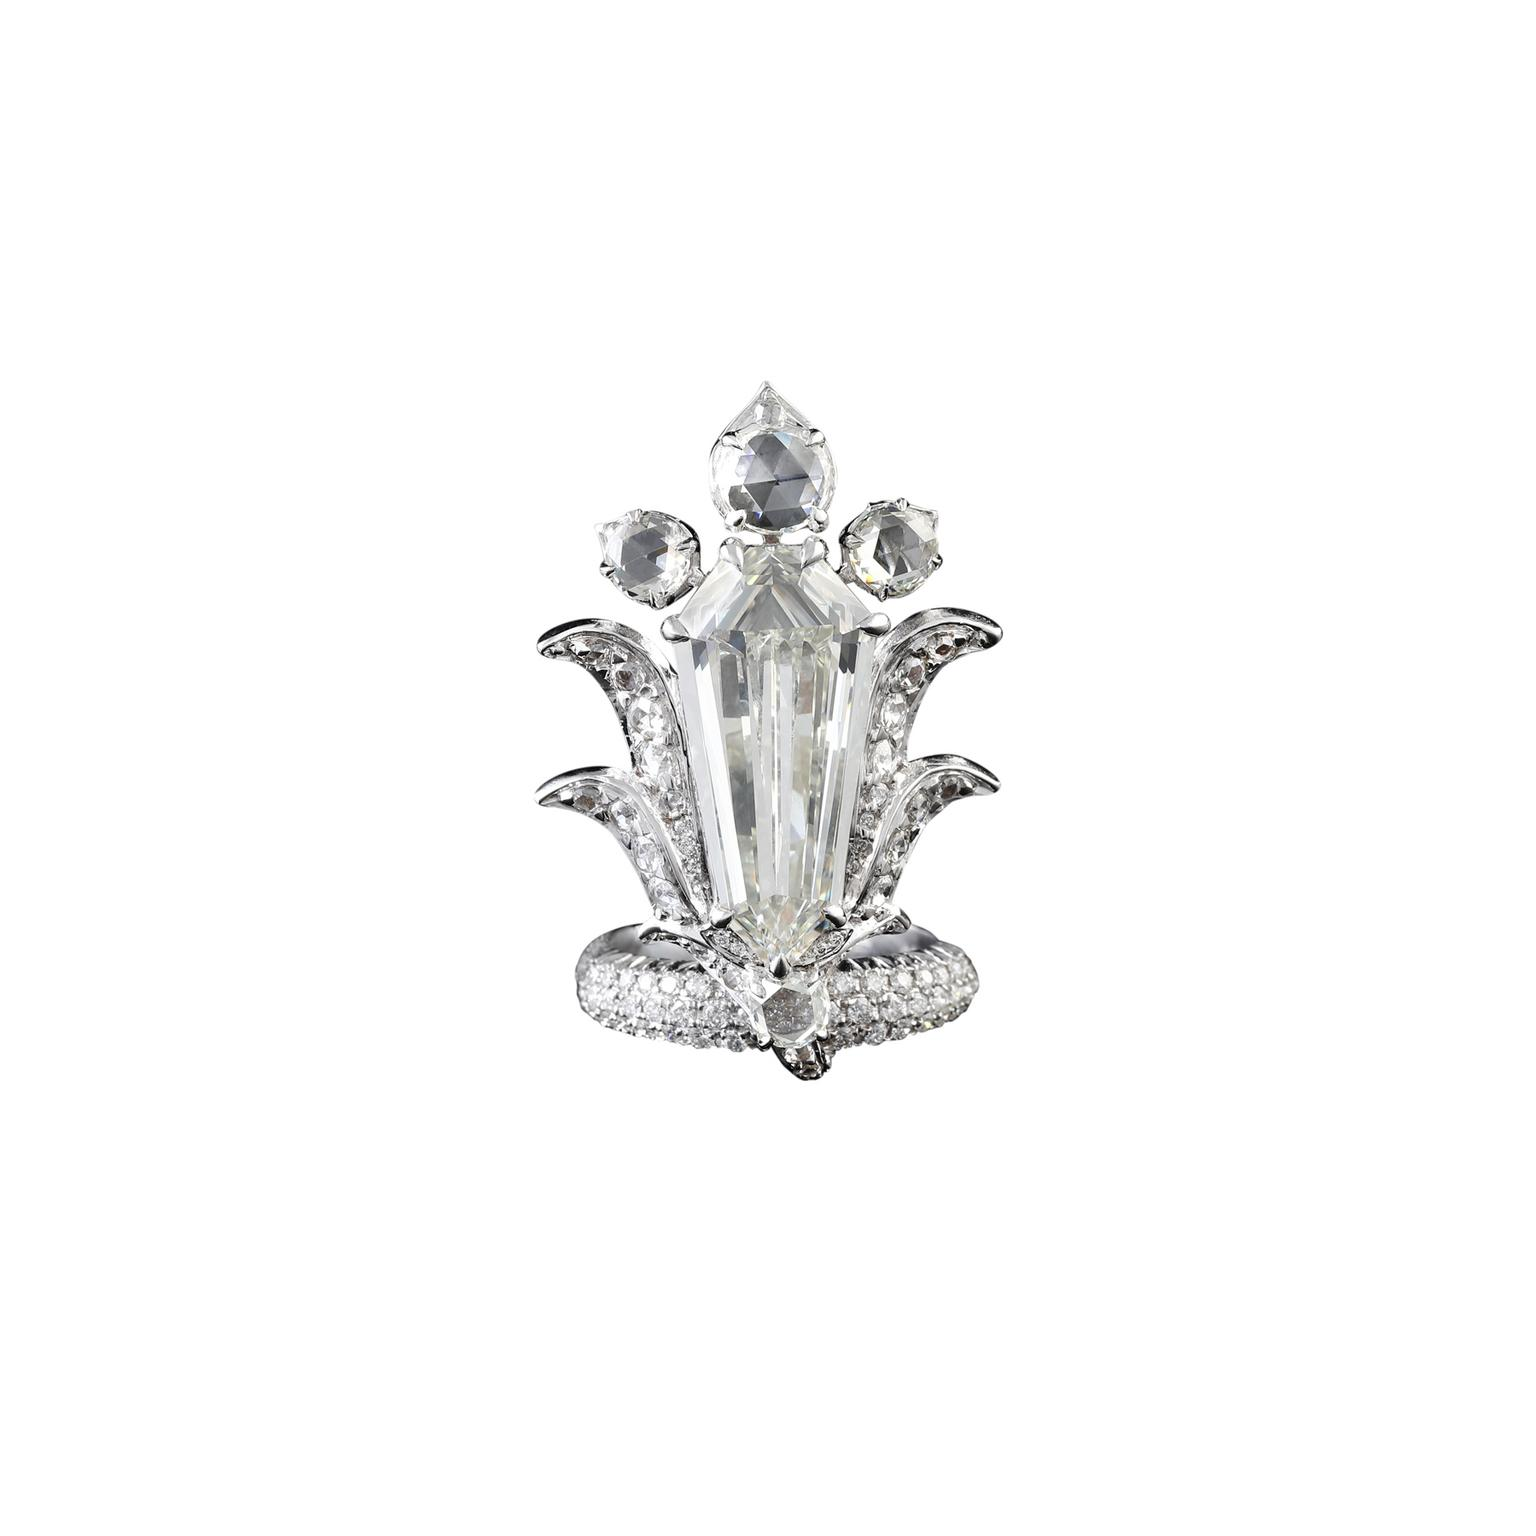 VAK white diamond 8 carat ring